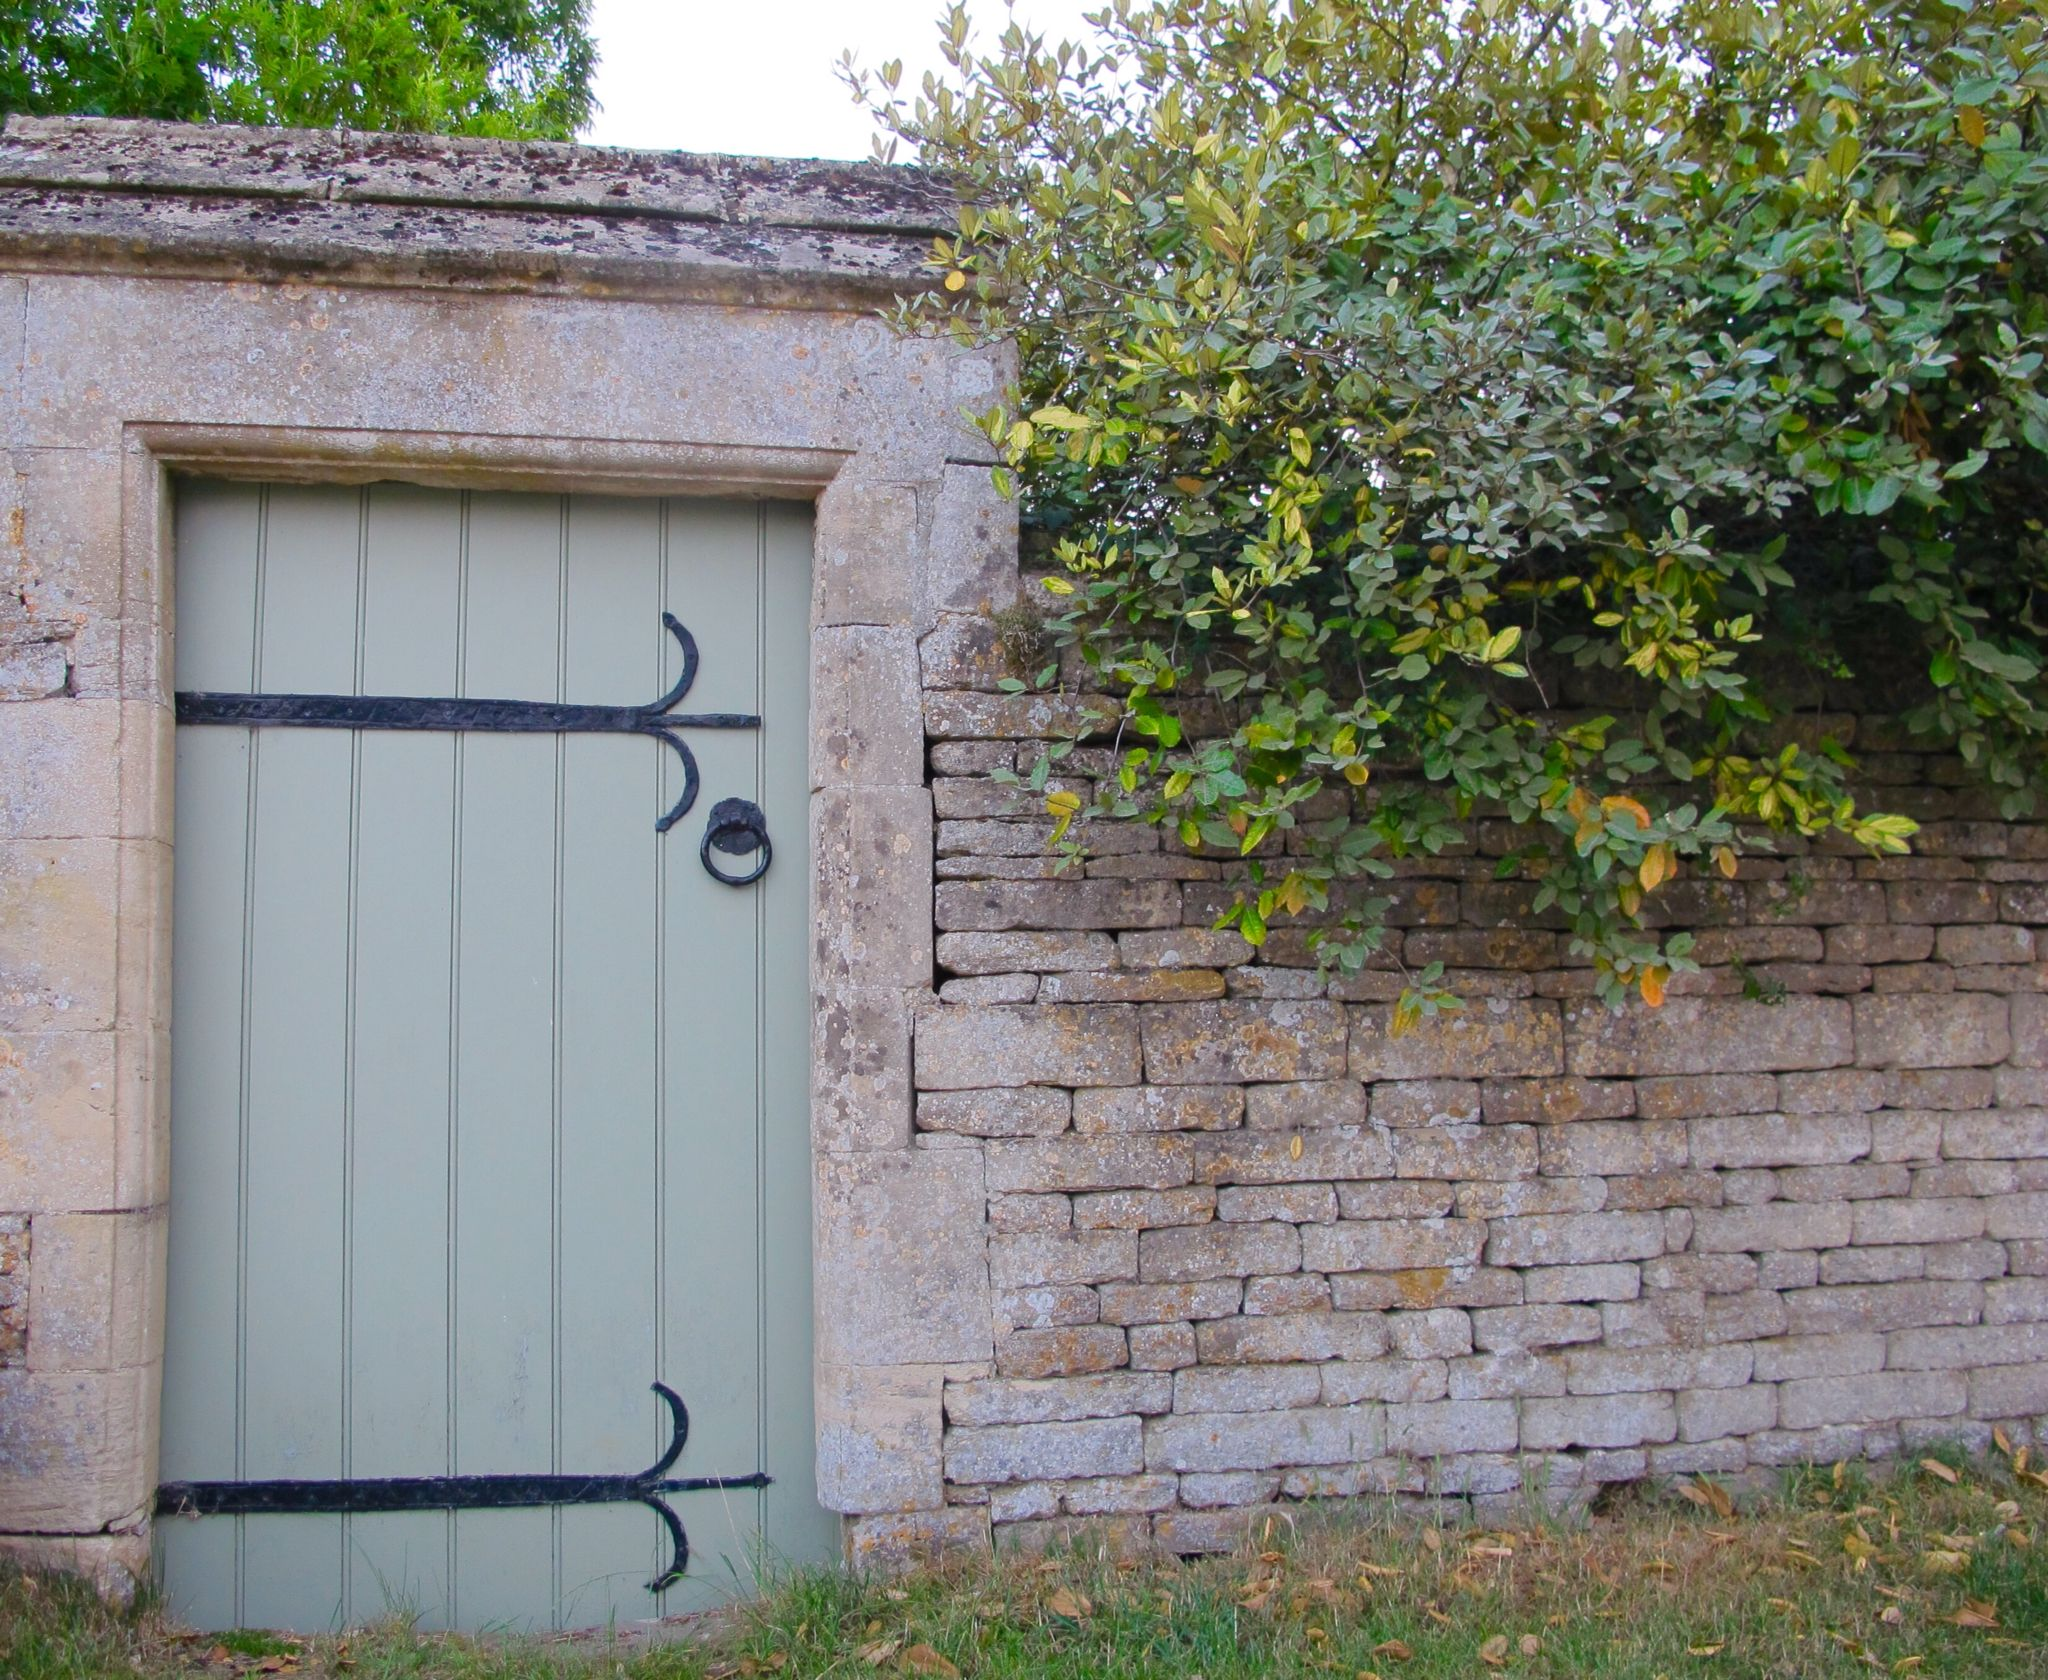 Majestic walls and intriguing doors